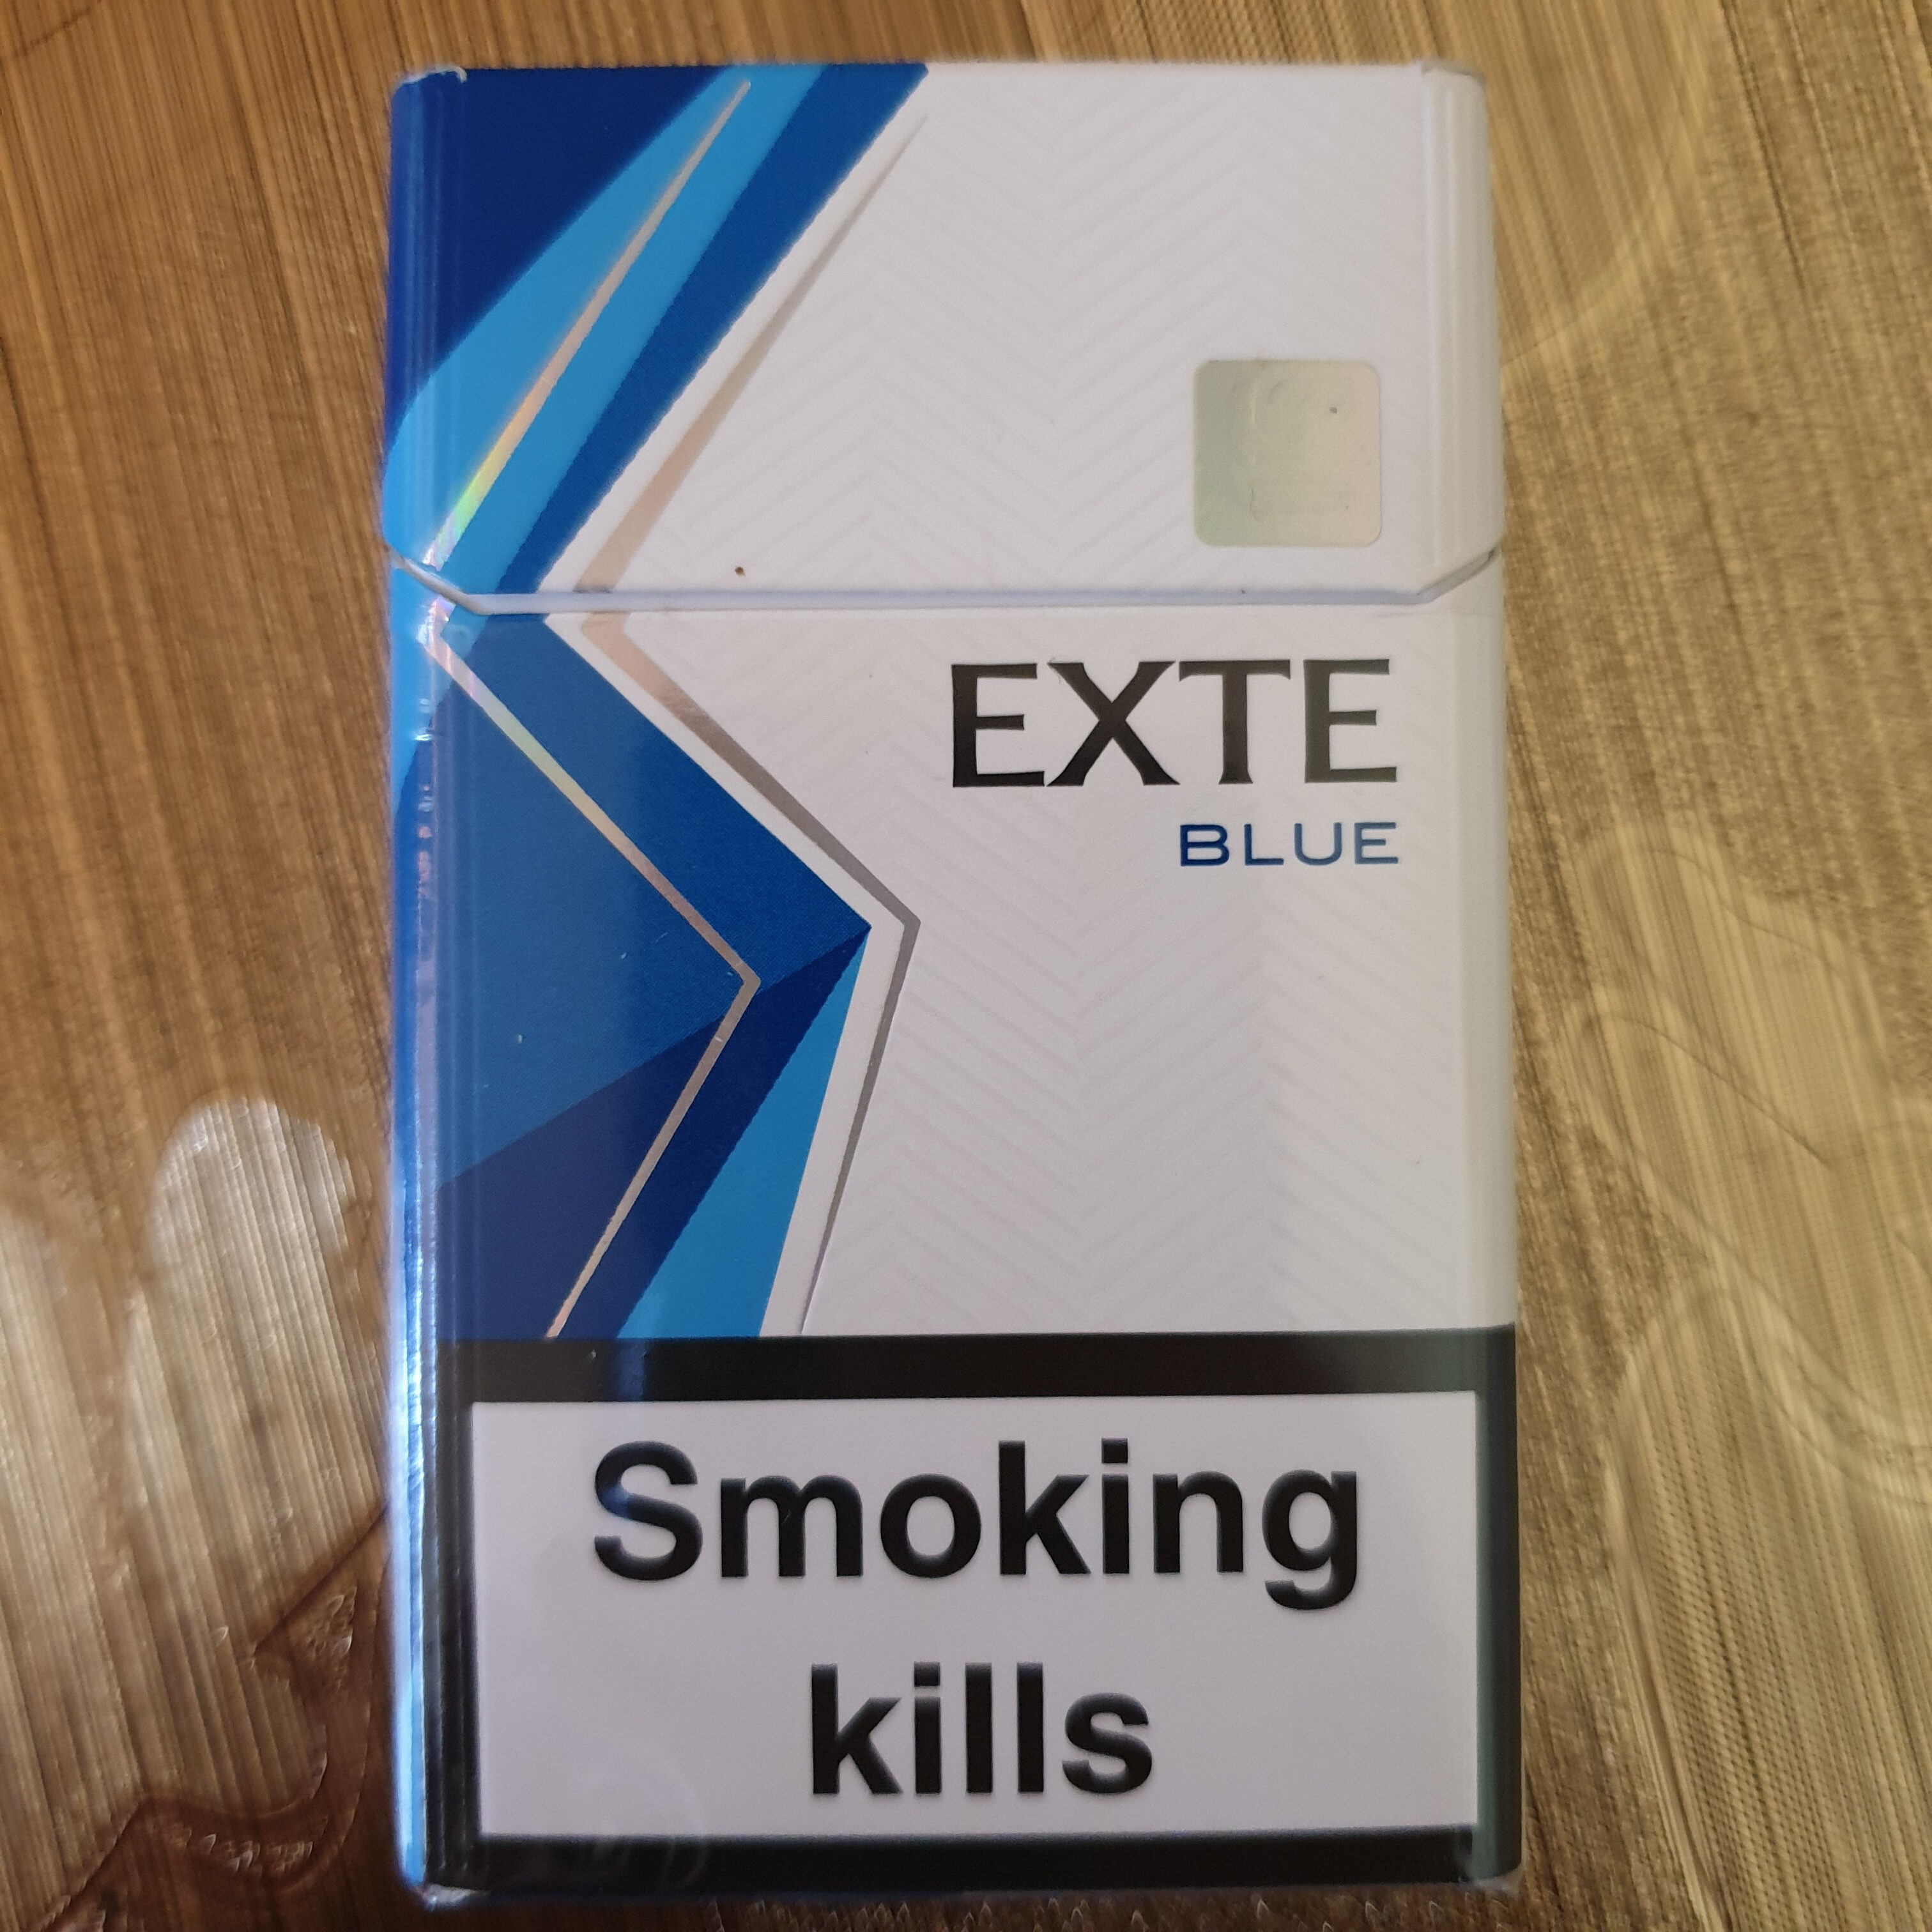 Exte Blue - Product